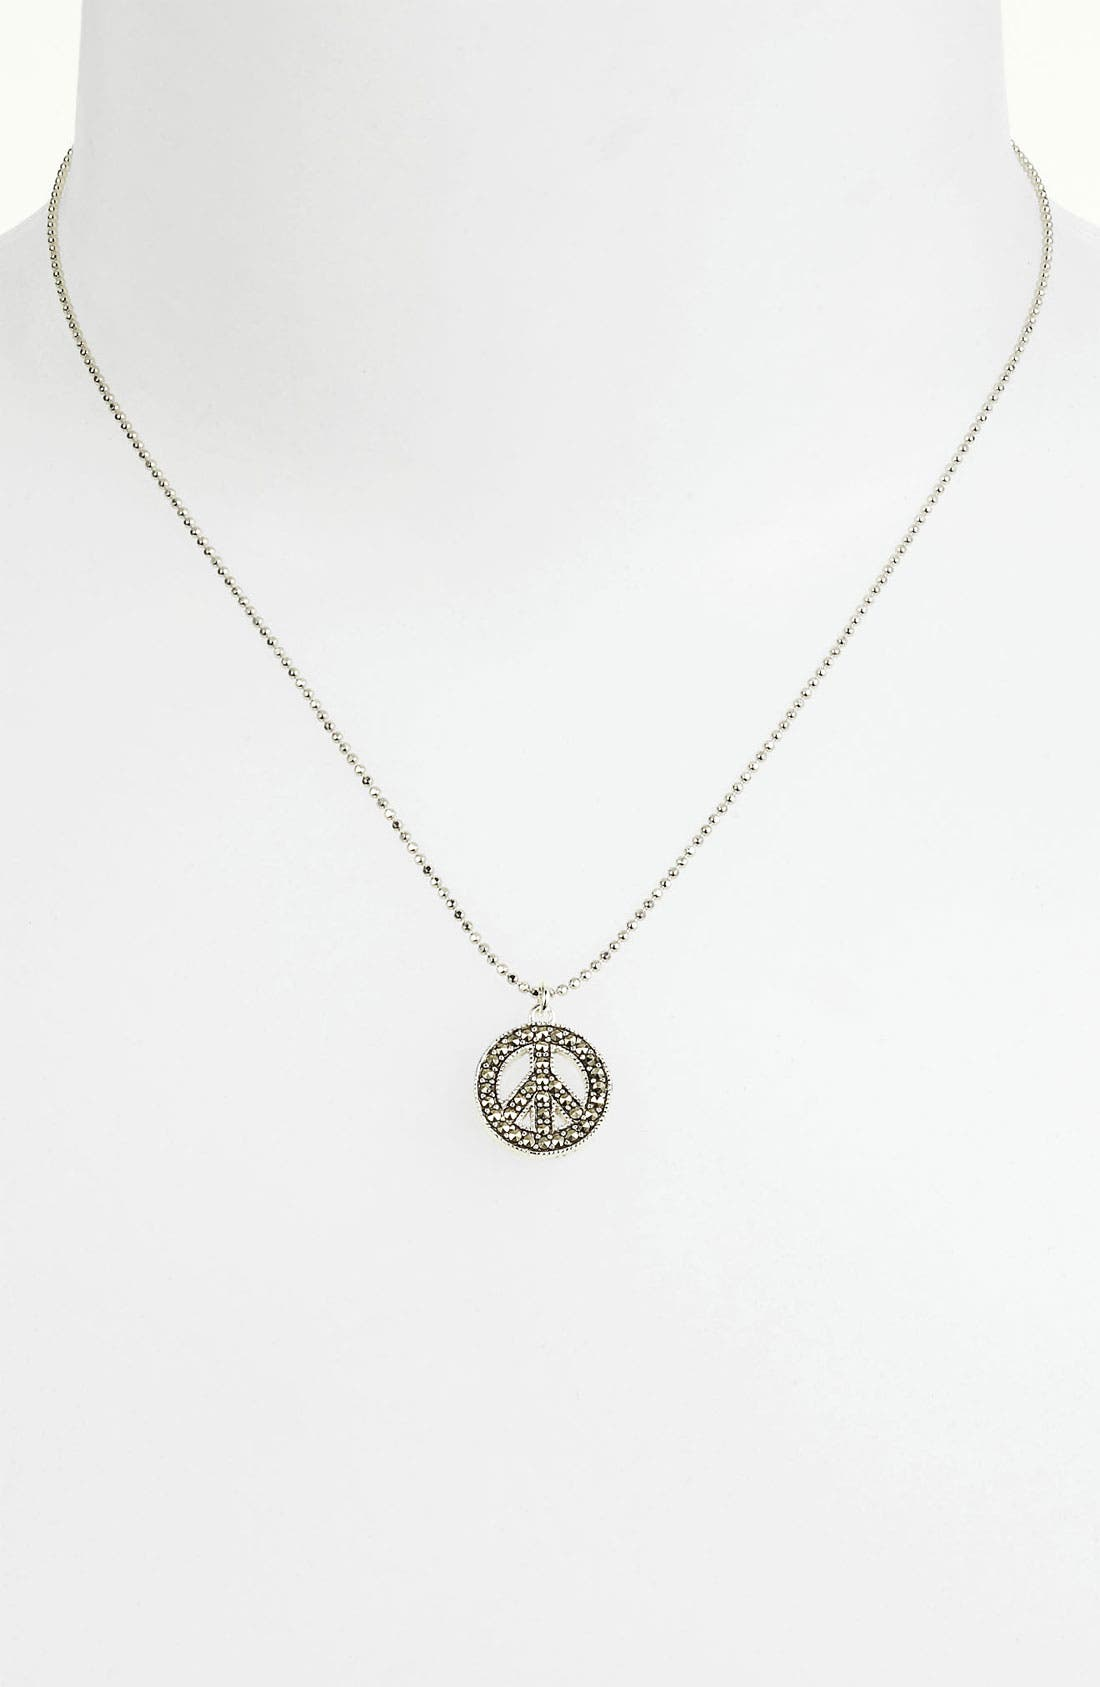 Alternate Image 1 Selected - Judith Jack Reversible Pavé Peace Sign Pendant Necklace